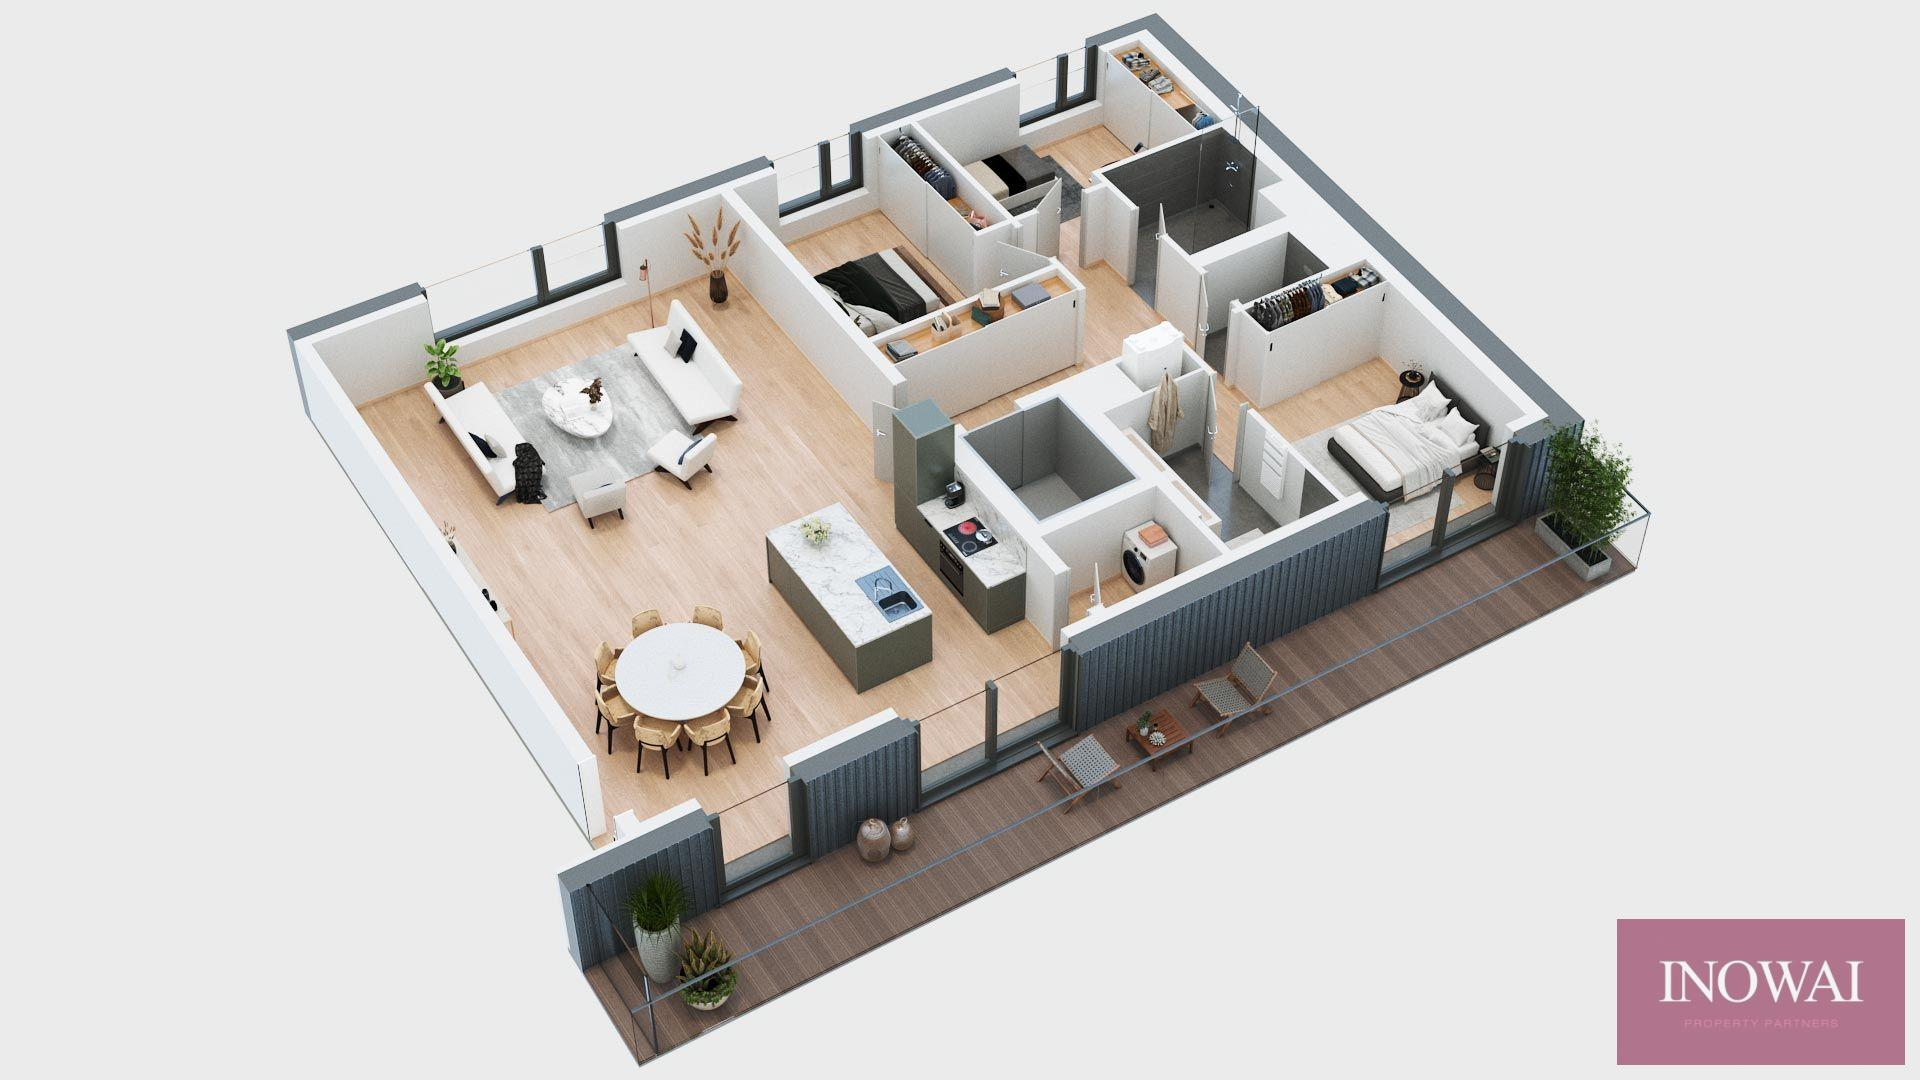 Appartement 3 chambres - projet CANAL 44